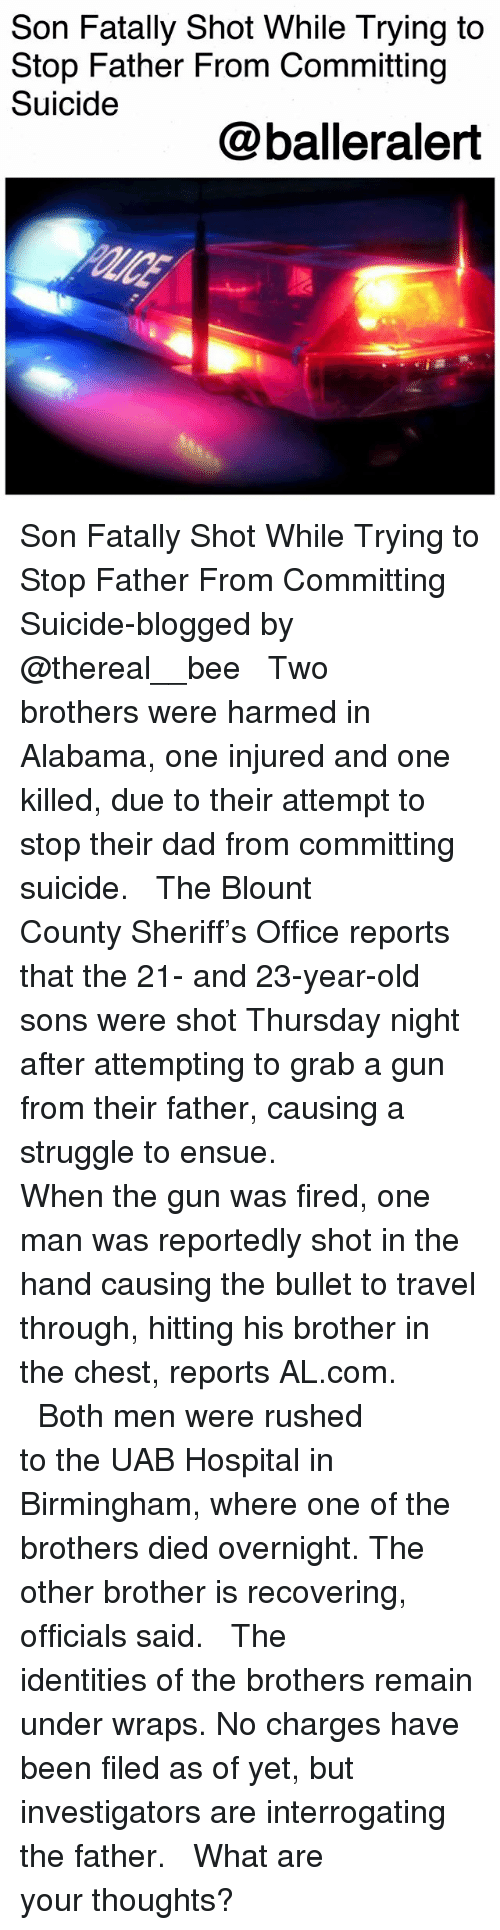 Dad, Memes, and Struggle: Son Fatally Shot While Trying to  Stop Father From Committing  Suicide  @balleralert Son Fatally Shot While Trying to Stop Father From Committing Suicide-blogged by @thereal__bee ⠀⠀⠀⠀⠀⠀⠀⠀⠀ ⠀⠀ Two brothers were harmed in Alabama, one injured and one killed, due to their attempt to stop their dad from committing suicide. ⠀⠀⠀⠀⠀⠀⠀⠀⠀ ⠀⠀ The Blount County Sheriff's Office reports that the 21- and 23-year-old sons were shot Thursday night after attempting to grab a gun from their father, causing a struggle to ensue. ⠀⠀⠀⠀⠀⠀⠀⠀⠀ ⠀⠀ When the gun was fired, one man was reportedly shot in the hand causing the bullet to travel through, hitting his brother in the chest, reports AL.com. ⠀⠀⠀⠀⠀⠀⠀⠀⠀ ⠀⠀ Both men were rushed to the UAB Hospital in Birmingham, where one of the brothers died overnight. The other brother is recovering, officials said. ⠀⠀⠀⠀⠀⠀⠀⠀⠀ ⠀⠀ The identities of the brothers remain under wraps. No charges have been filed as of yet, but investigators are interrogating the father. ⠀⠀⠀⠀⠀⠀⠀⠀⠀ ⠀⠀ What are your thoughts?